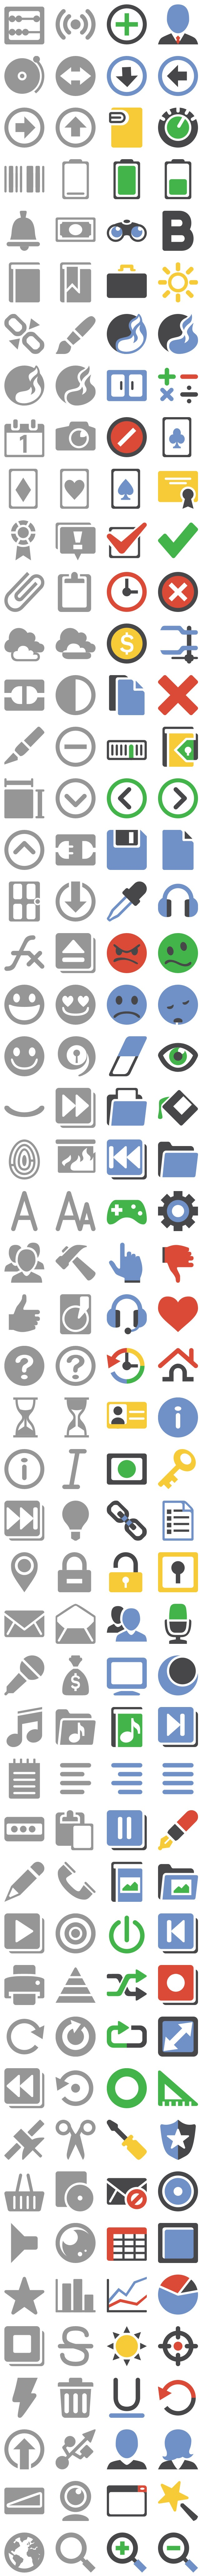 google-interface-icons-big